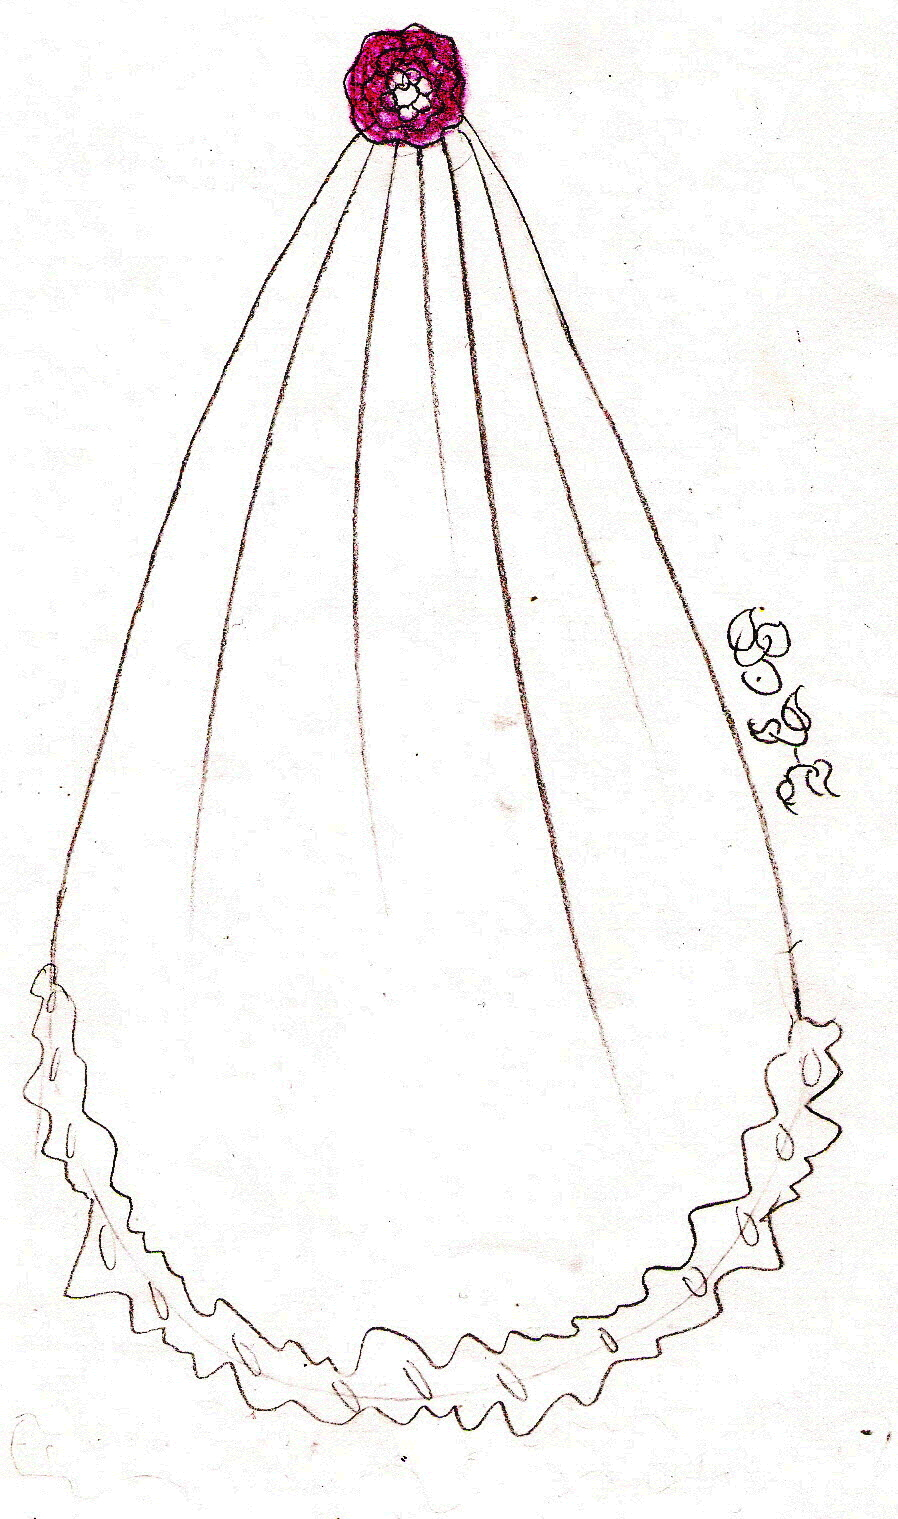 Bridal veil clipart 20 free Cliparts | Download images on ... (898 x 1519 Pixel)